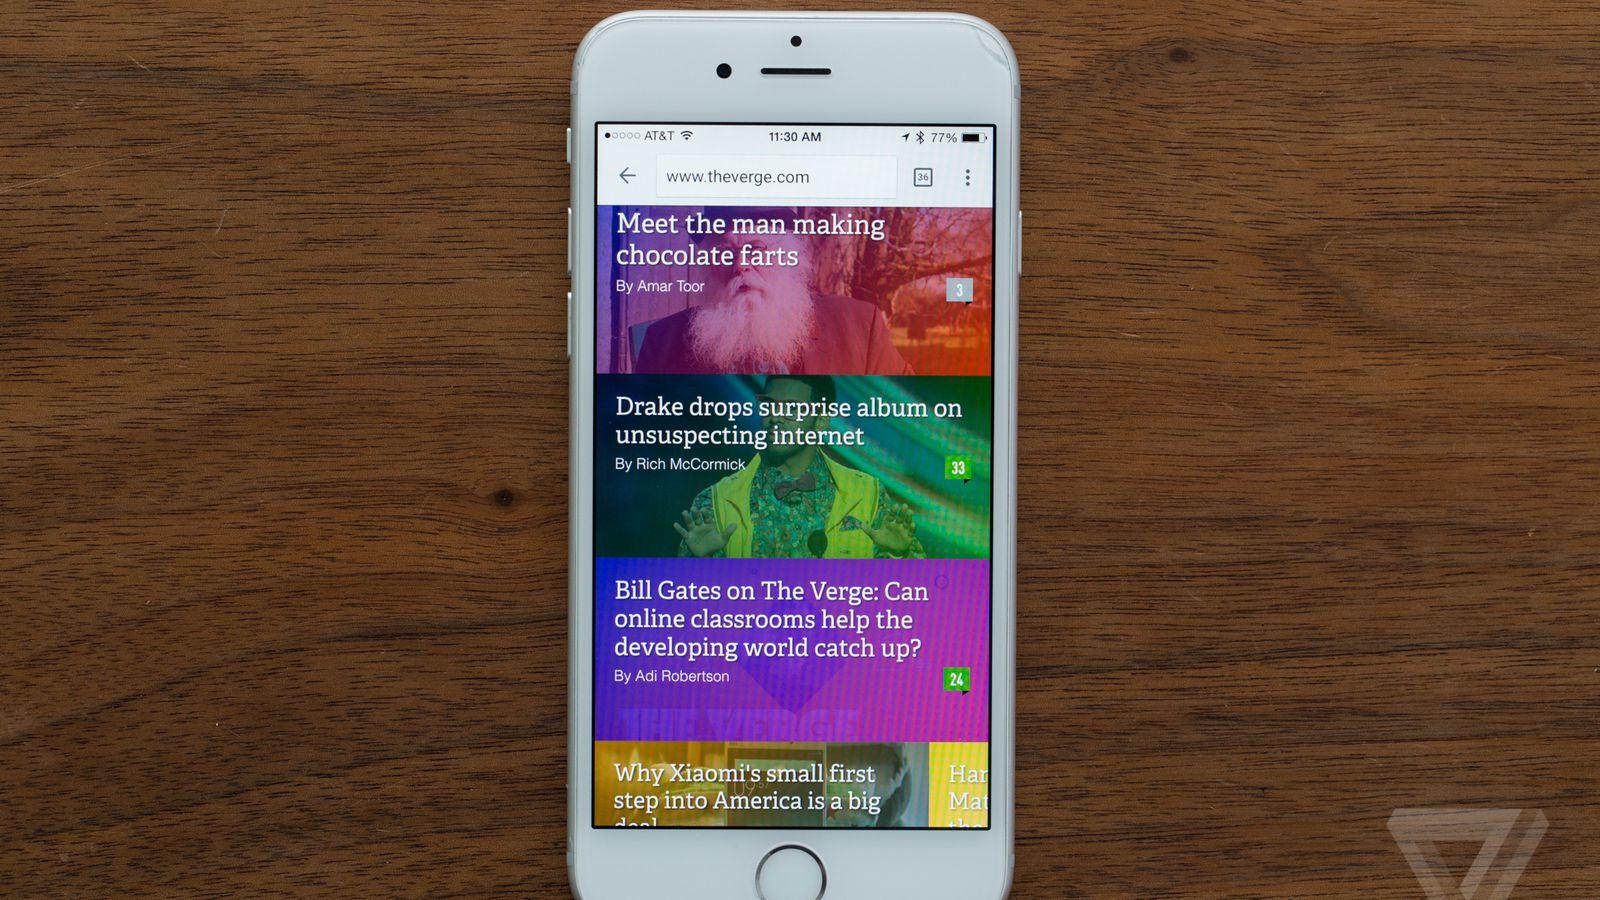 Iphone 6s Stock Wallpaper: IPhone 6S Will Reportedly Have Animated Wallpaper Like The